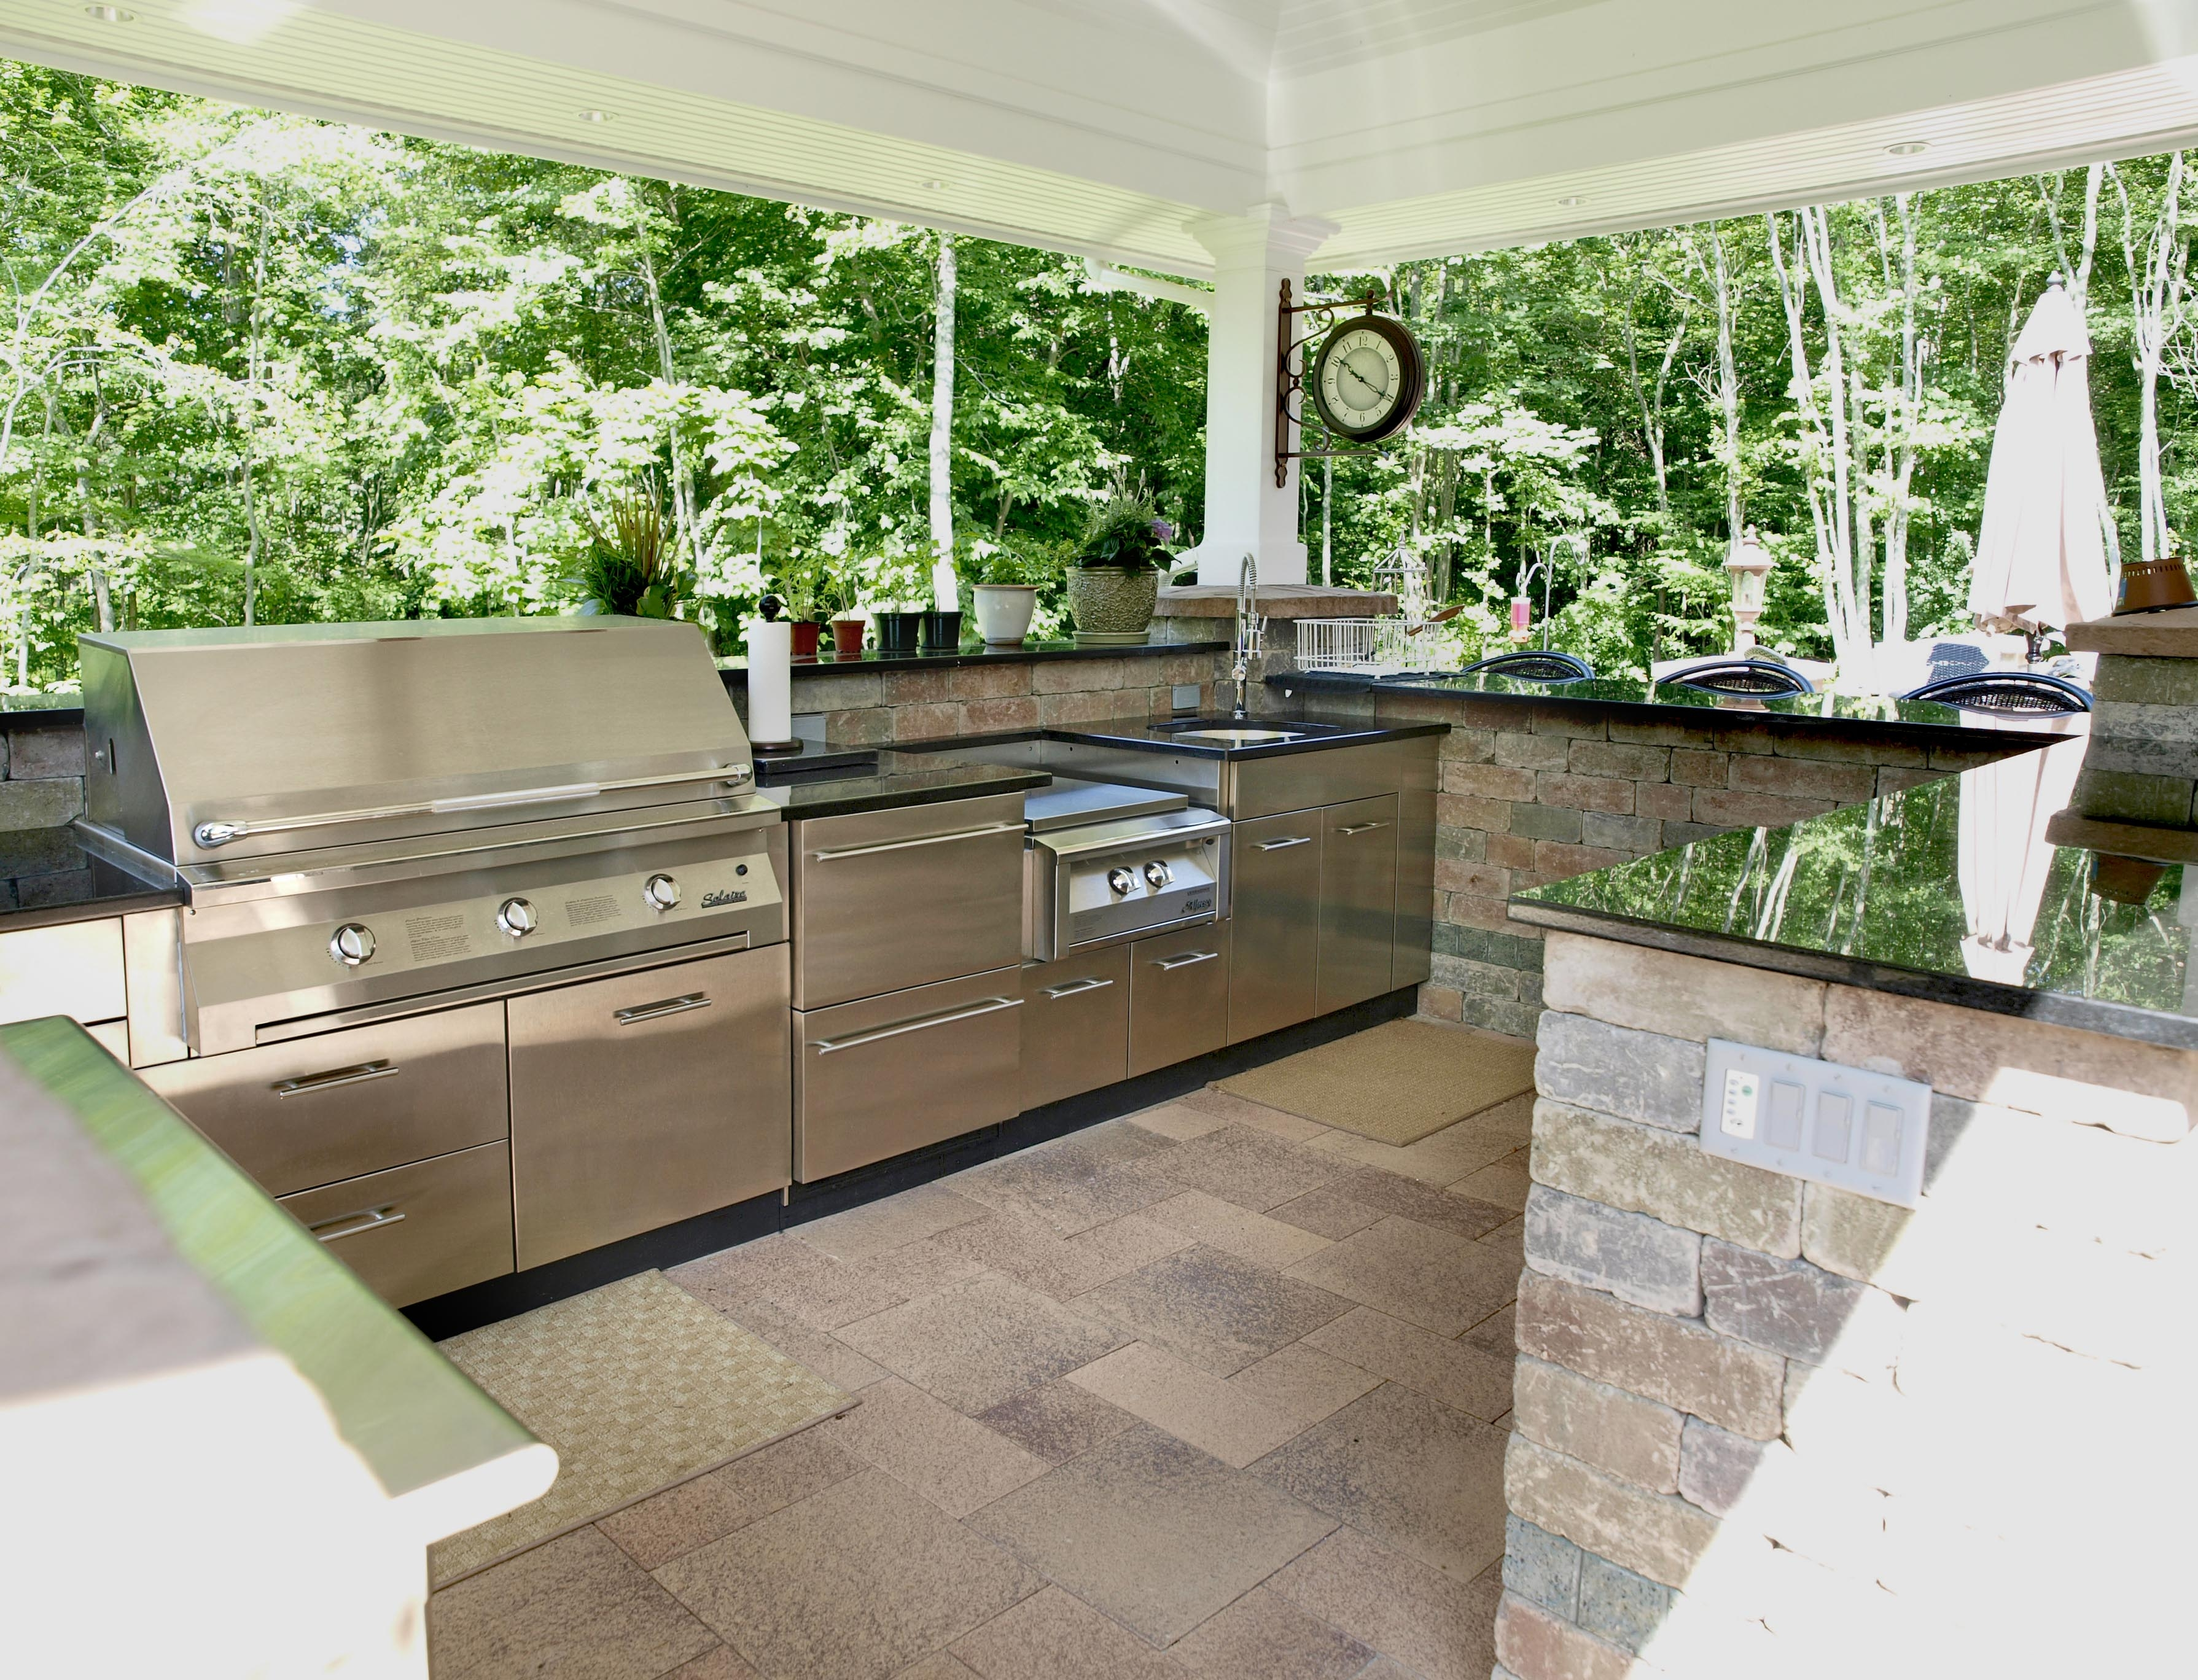 outdoor kitchen layout mats kitchens  the ultimate garden party